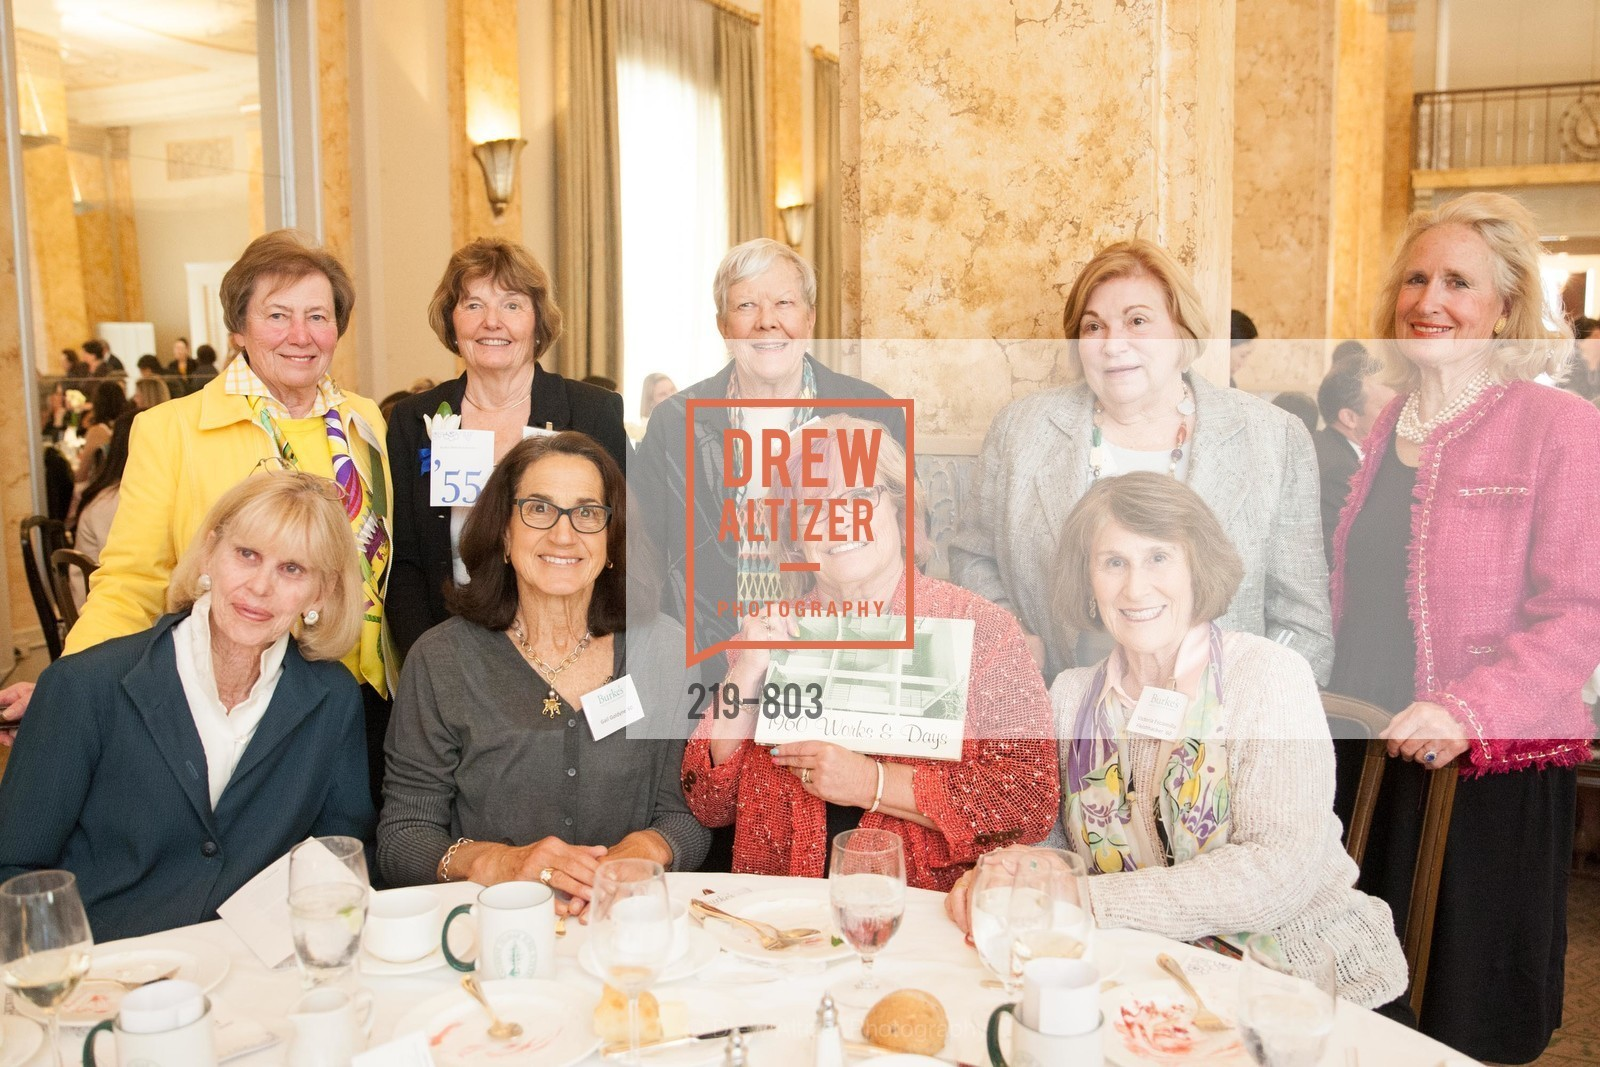 Sarah Glassie Griffith, Kate Lord, Gail Goldyne, Betsy Dohrmann, Victoria Fleischacker, BURKE'S Alumnae Luncheon, US, April 25th, 2015,Drew Altizer, Drew Altizer Photography, full-service agency, private events, San Francisco photographer, photographer california